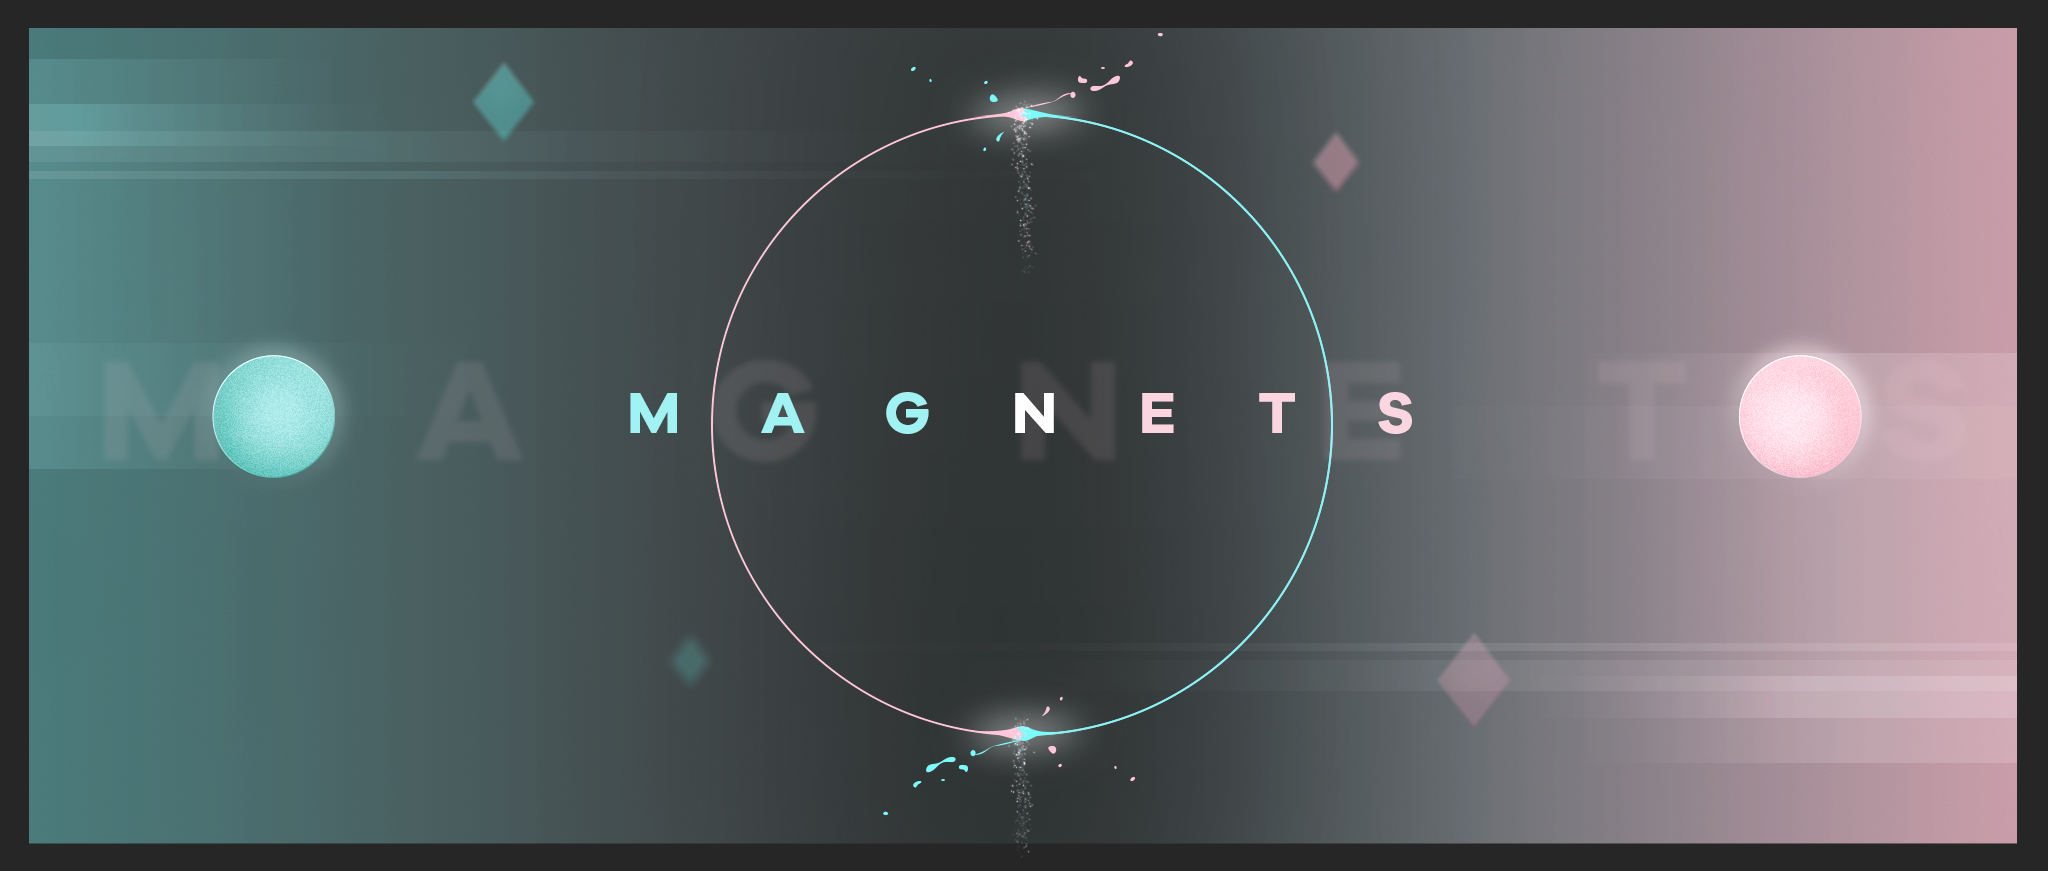 Magnets – Style Frame_04